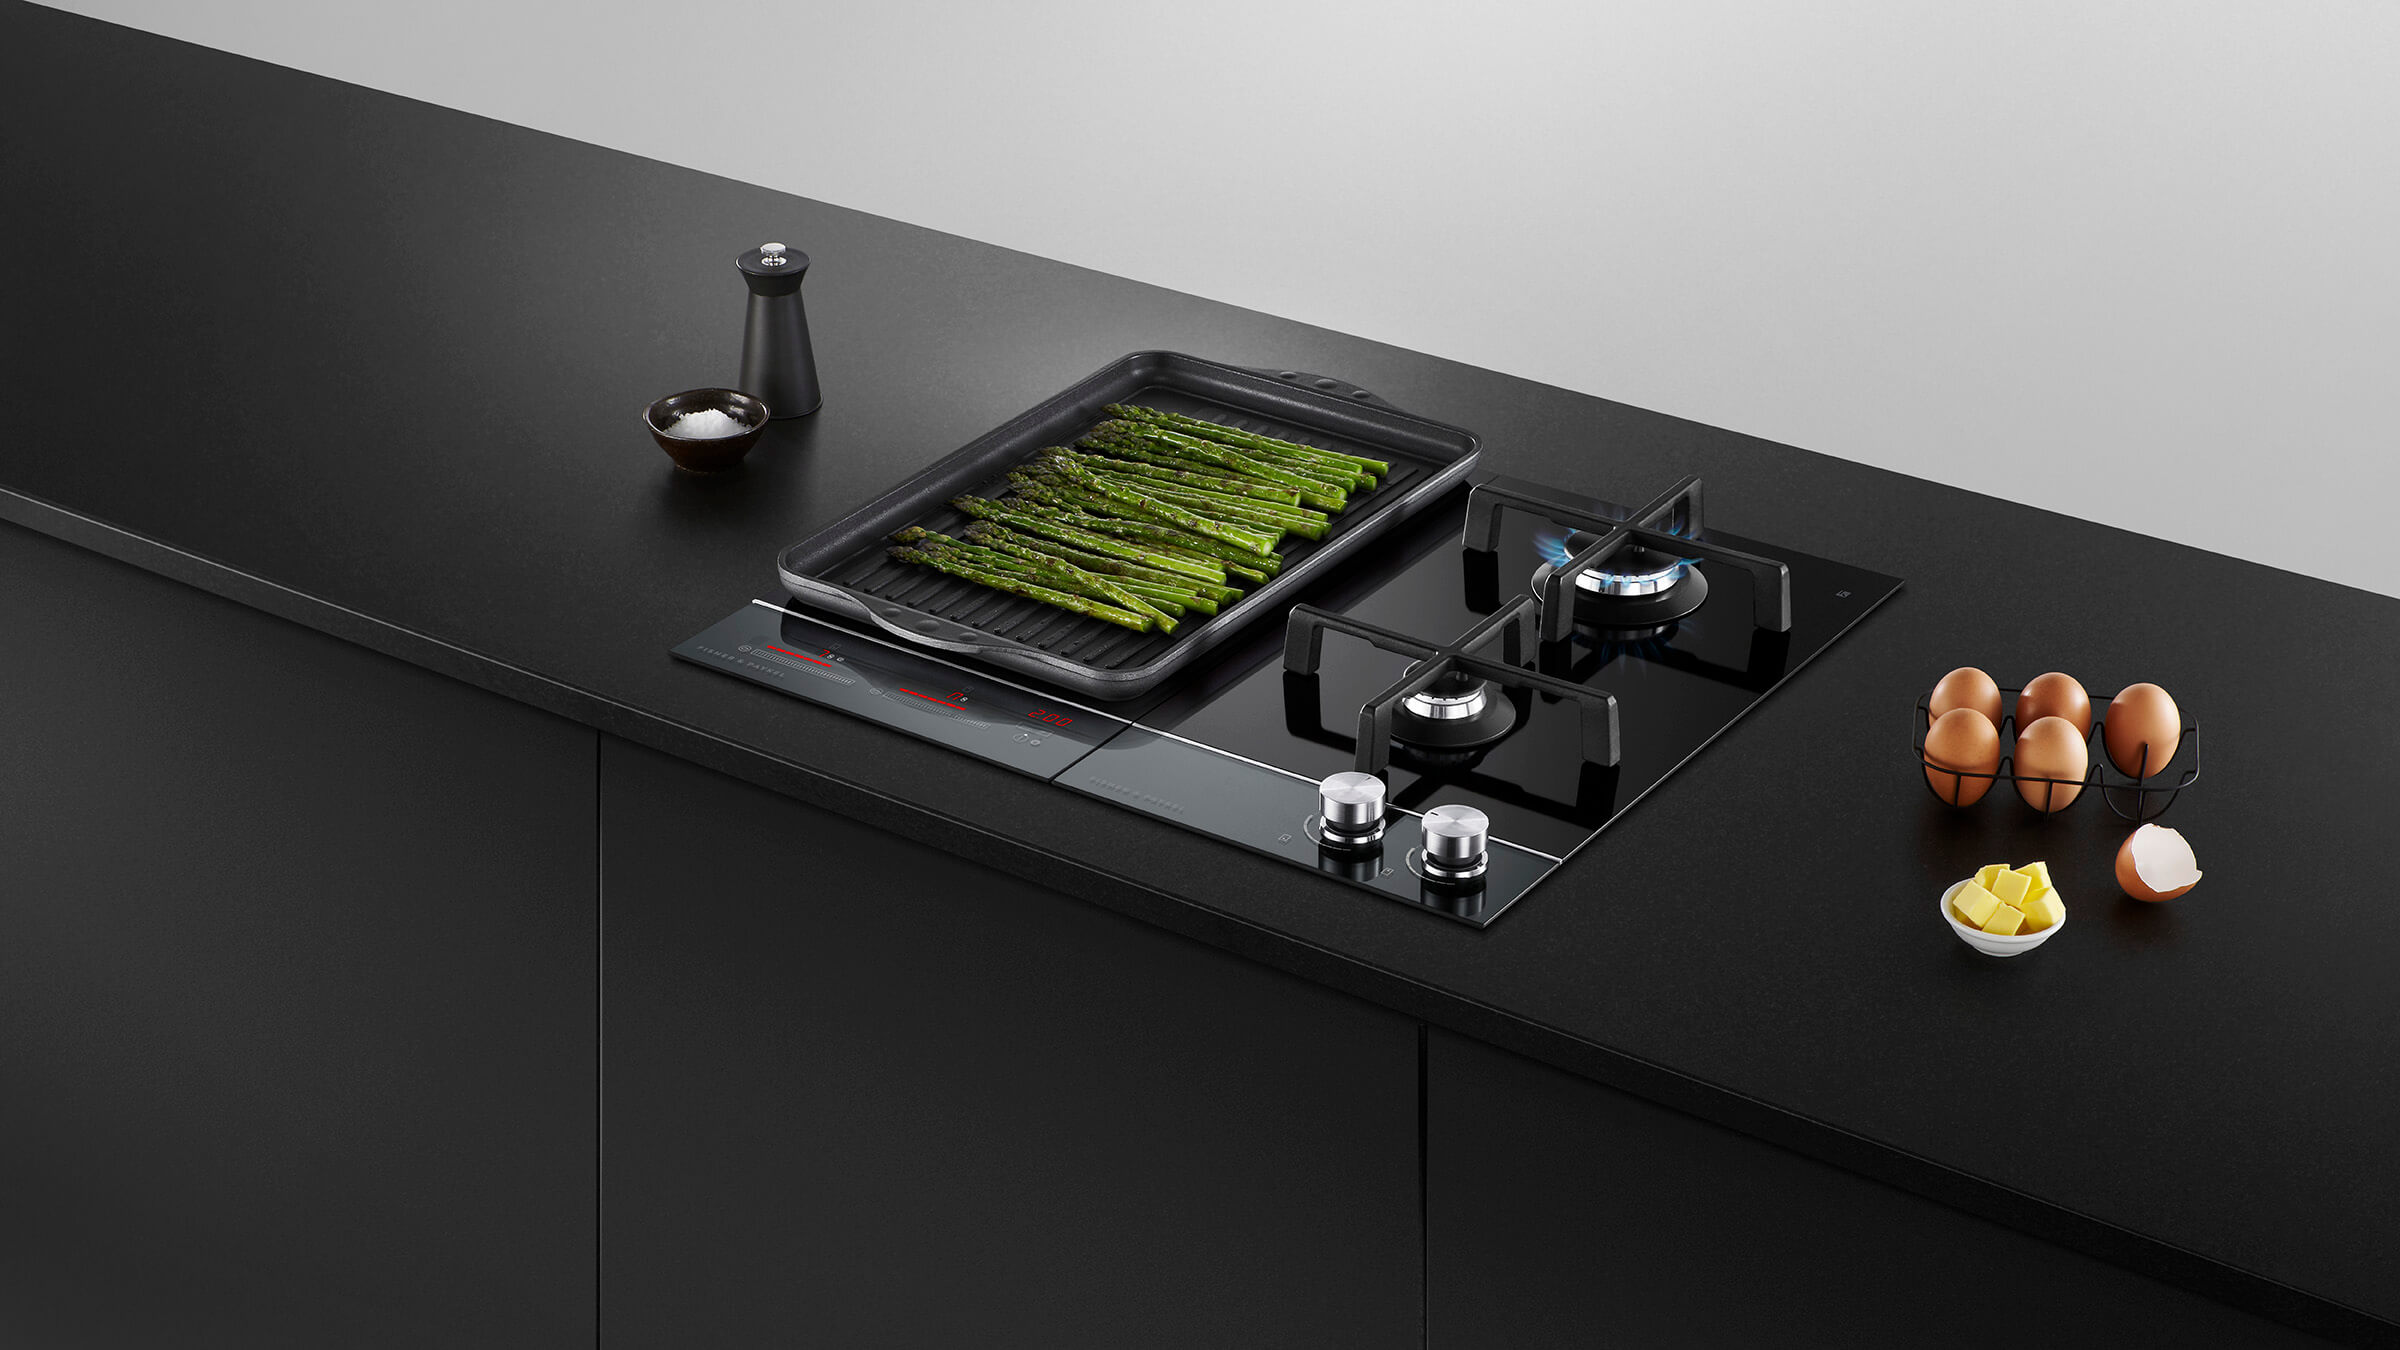 How To Choose A Cooktop Circuit Board Induction Cooker Buy Mix And Match Cooktops